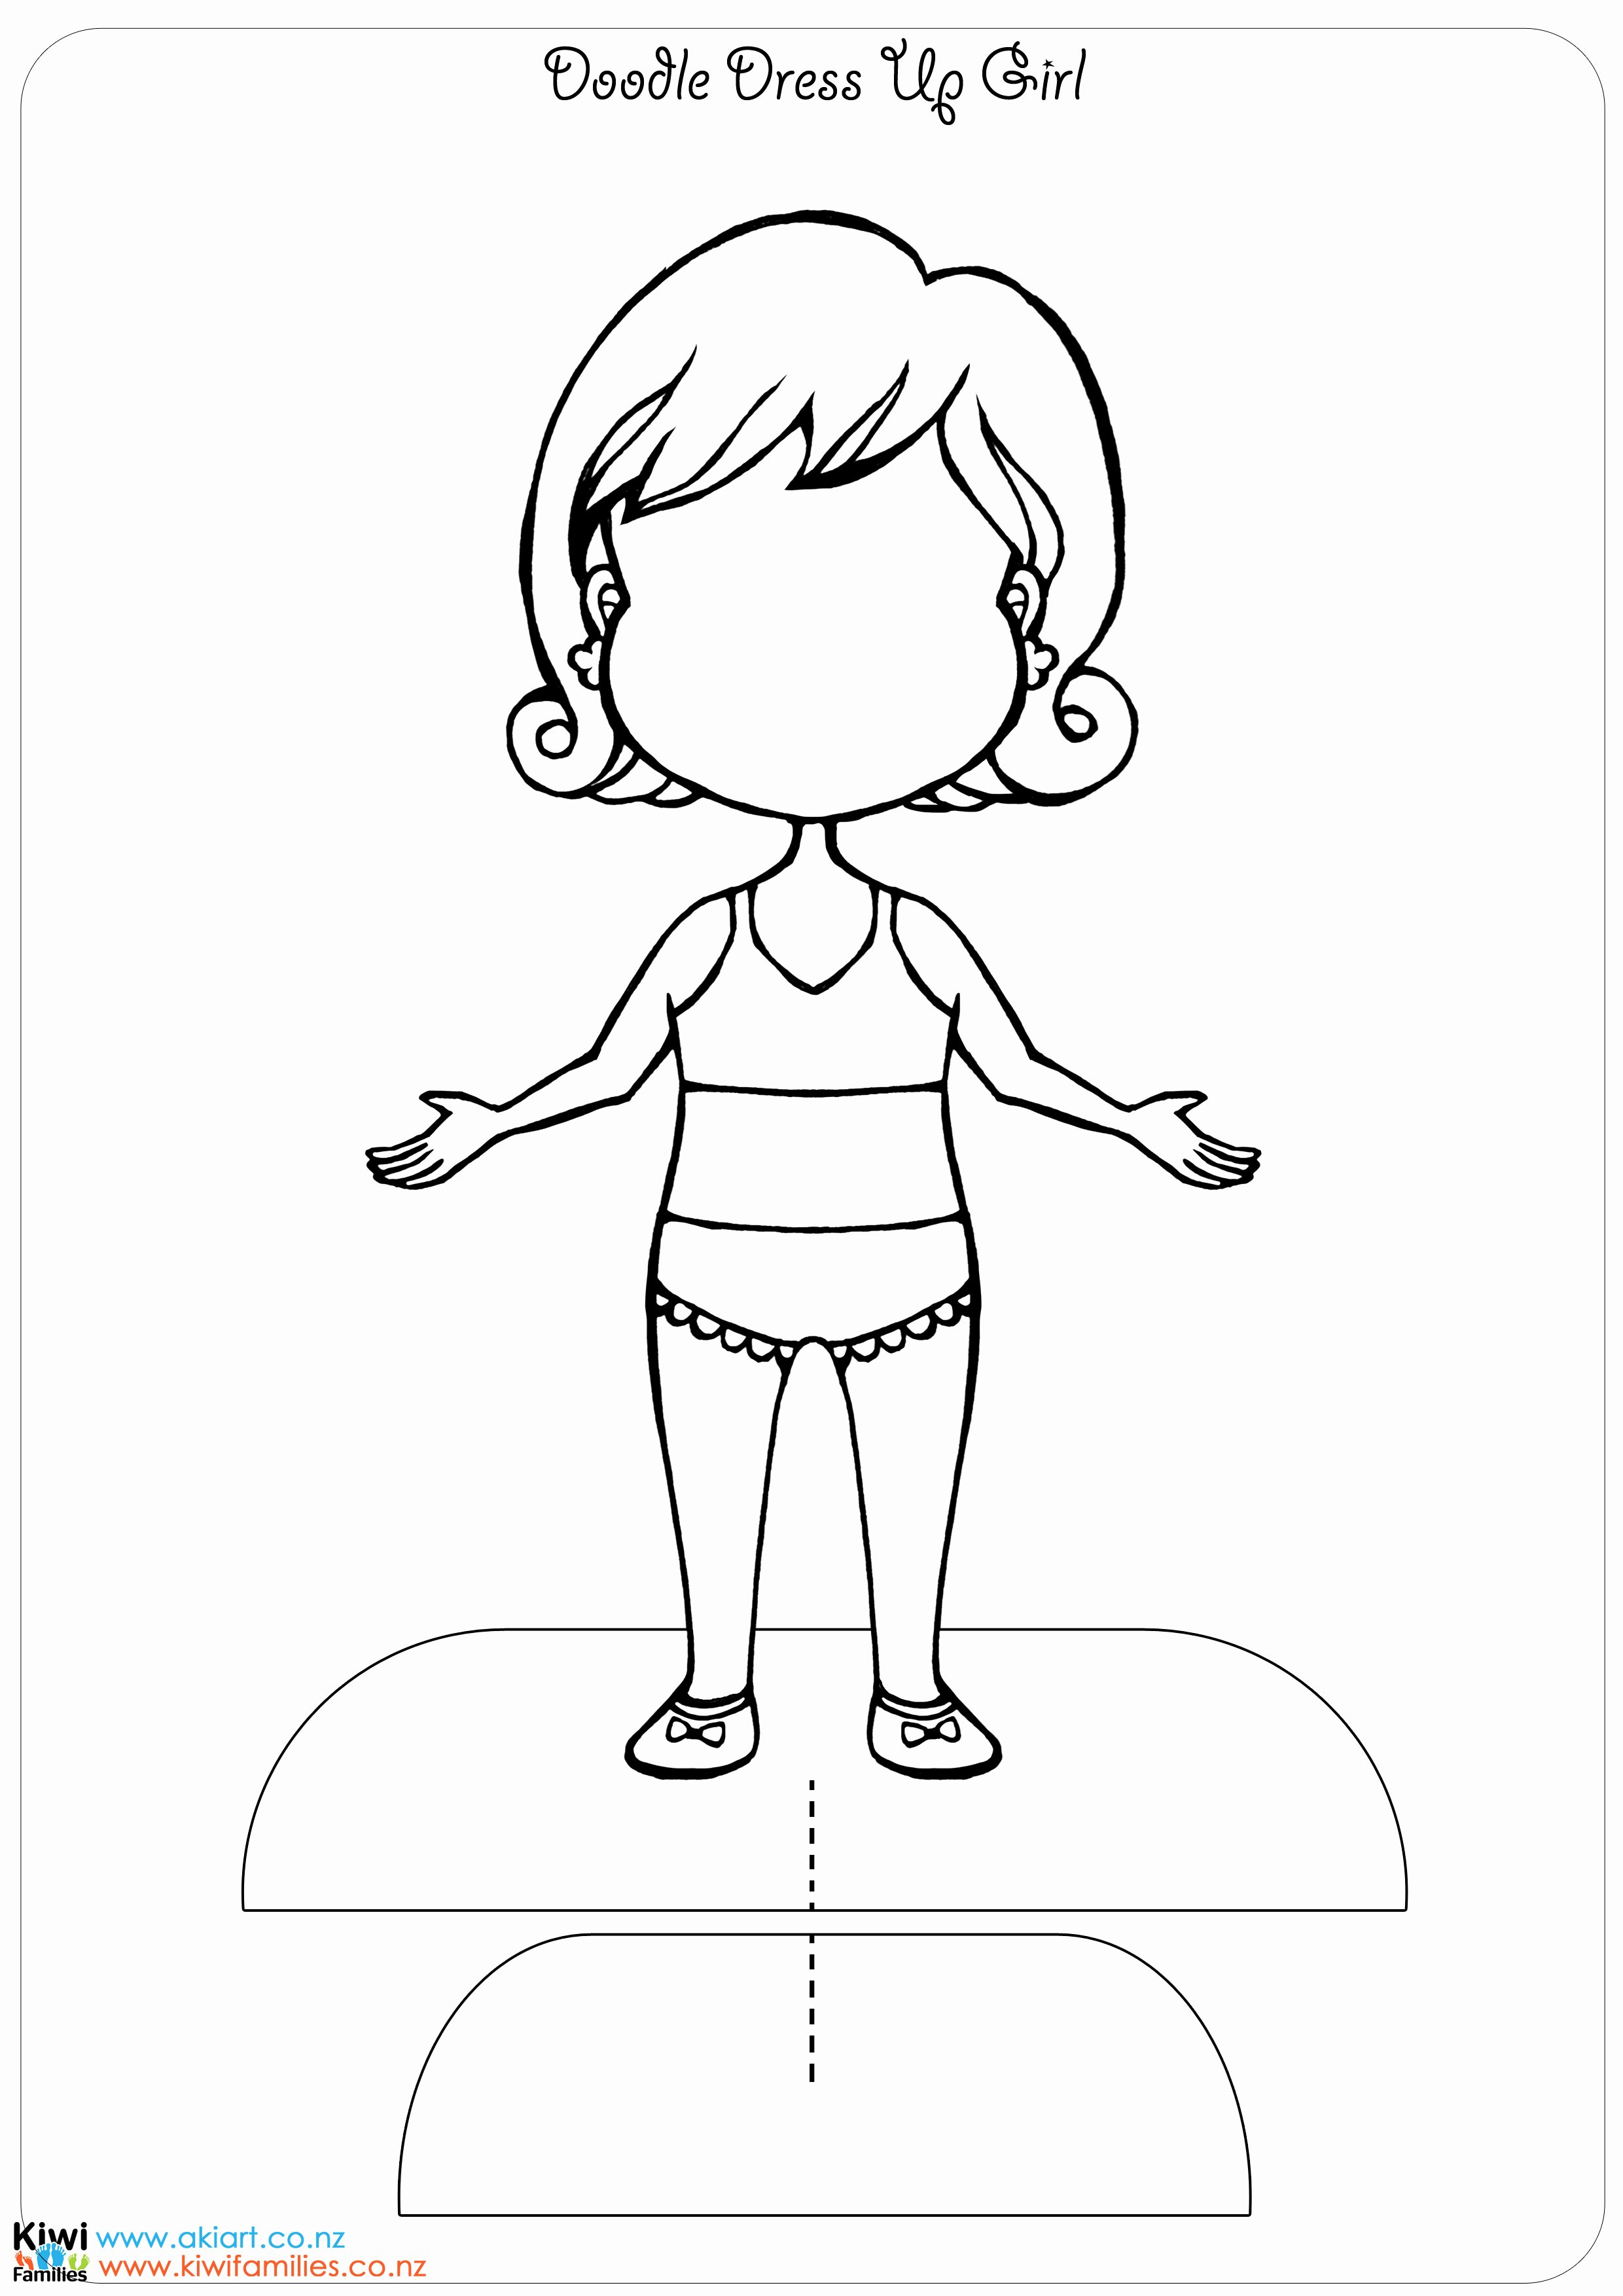 Paper Doll Cut Outs Luxury Make Your Own Paper Dolls Kiwi Families